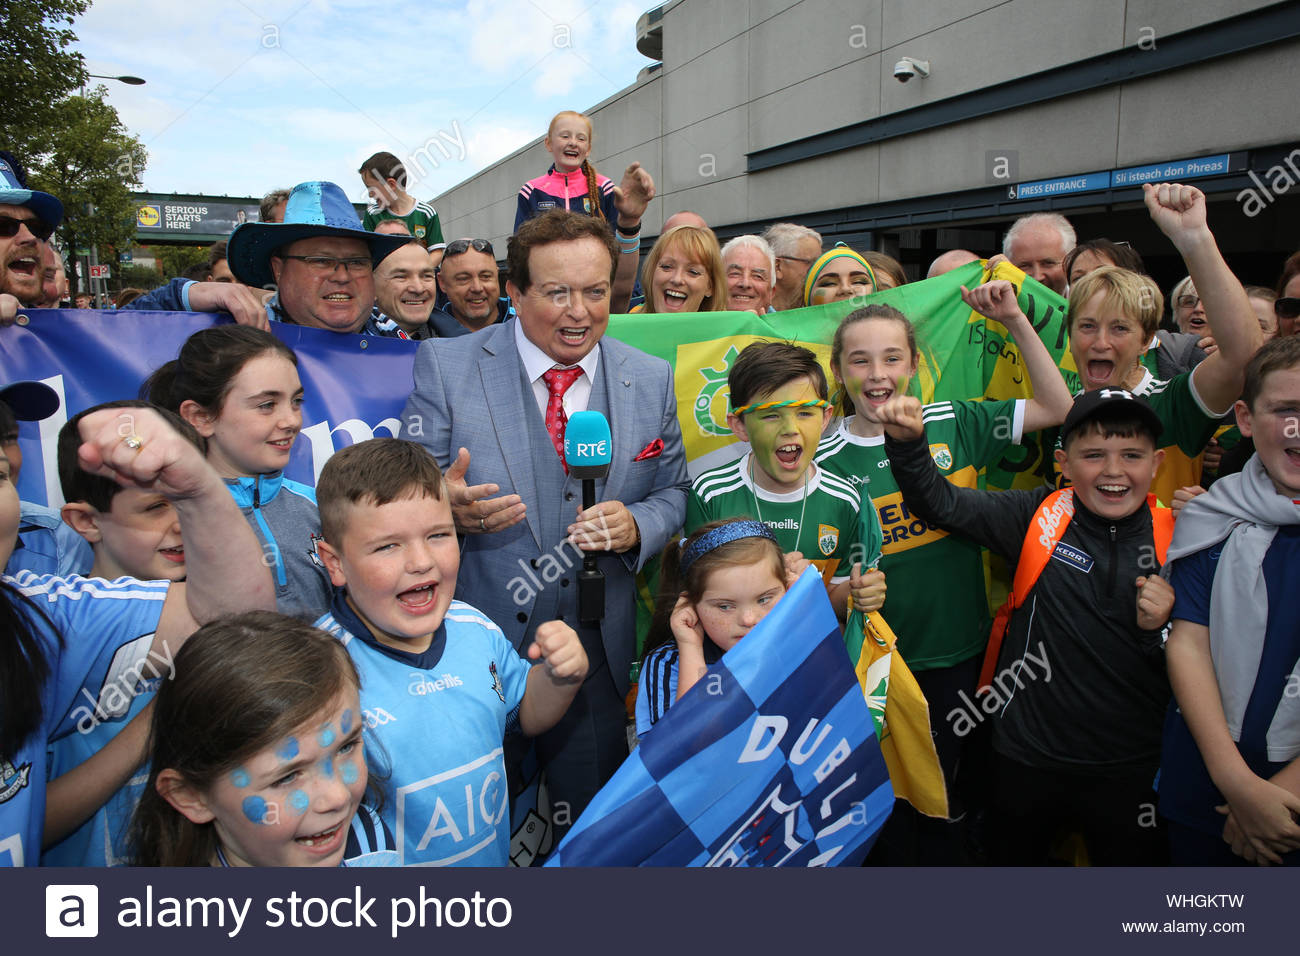 Dublin, Ireland September 1, 2019. RTE reporter Marty Morrissey with supporters of Dublin and Kerry at Croke Park in Dublin before an exciting All Ireland final game, which ended in a draw. The two teams will return on Saturday week with Dublin's hopes of five titles in a row still alive. Stock Photo